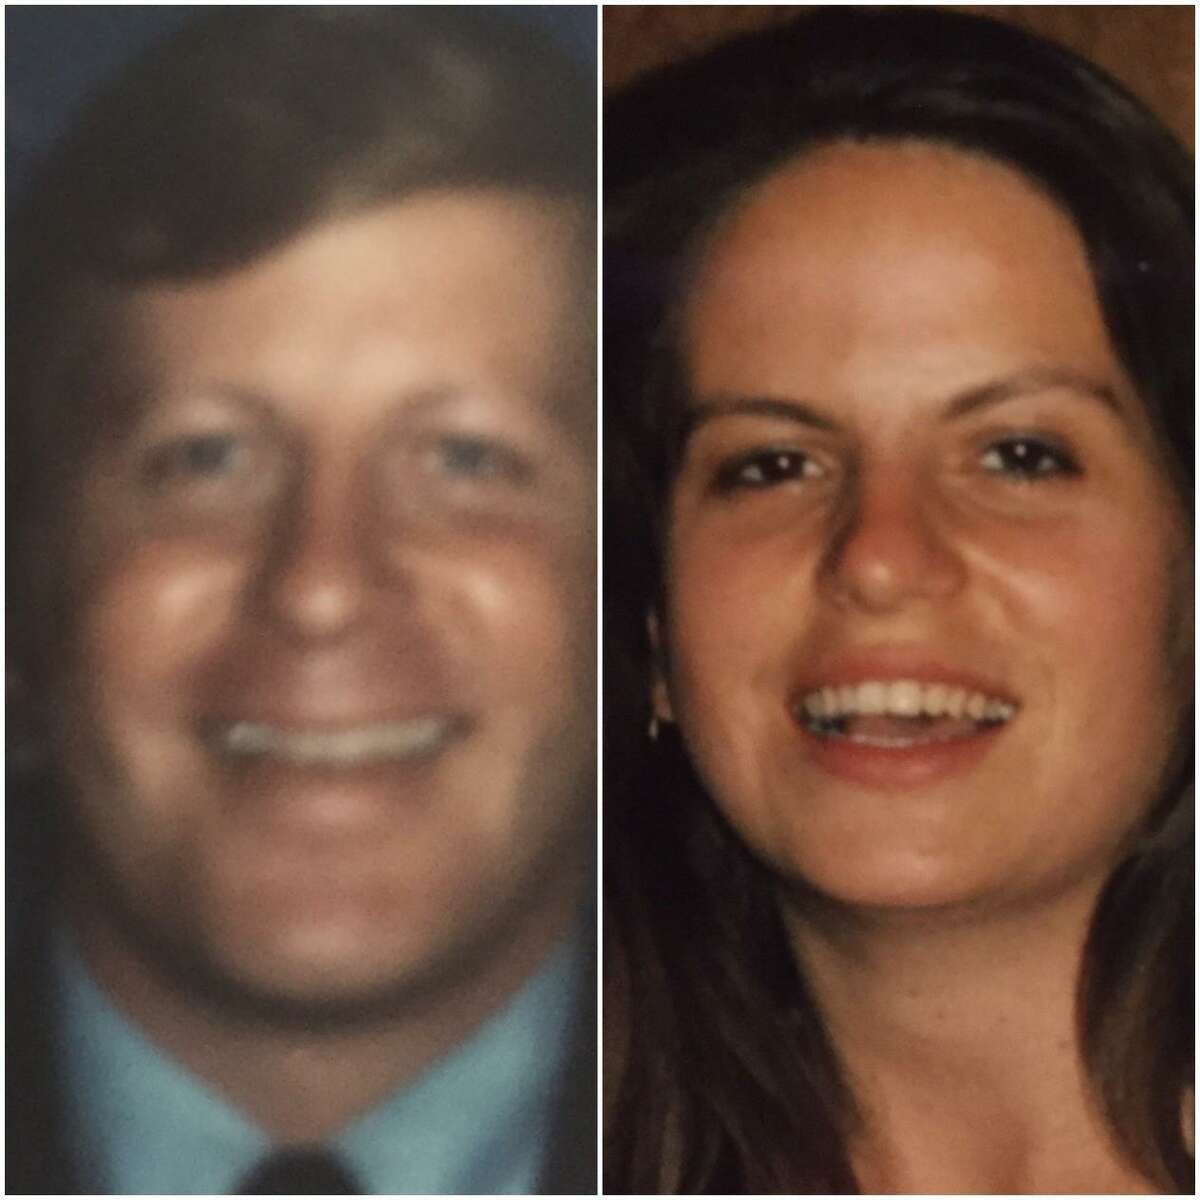 Amy Huckbea was reconnected with her birth father, Trey Francis, weeks before Francis died thanks to John Suggs' research.